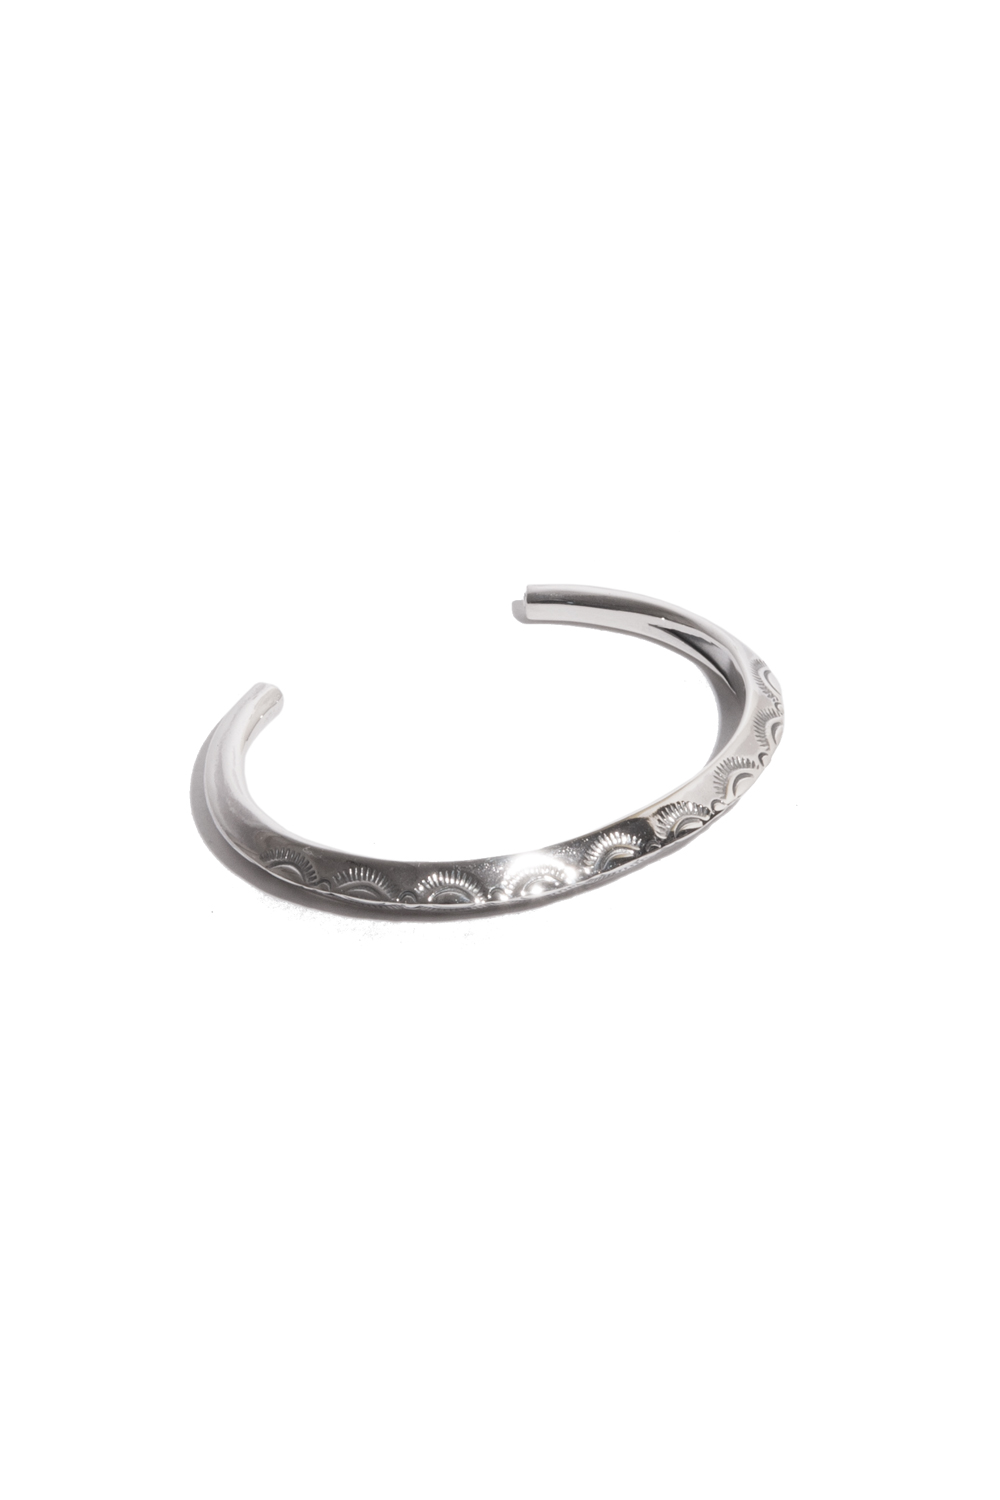 画像1: 【LARRY SMITH】 THIN TRIANGLE BANGLE LEAF (LADY'S)